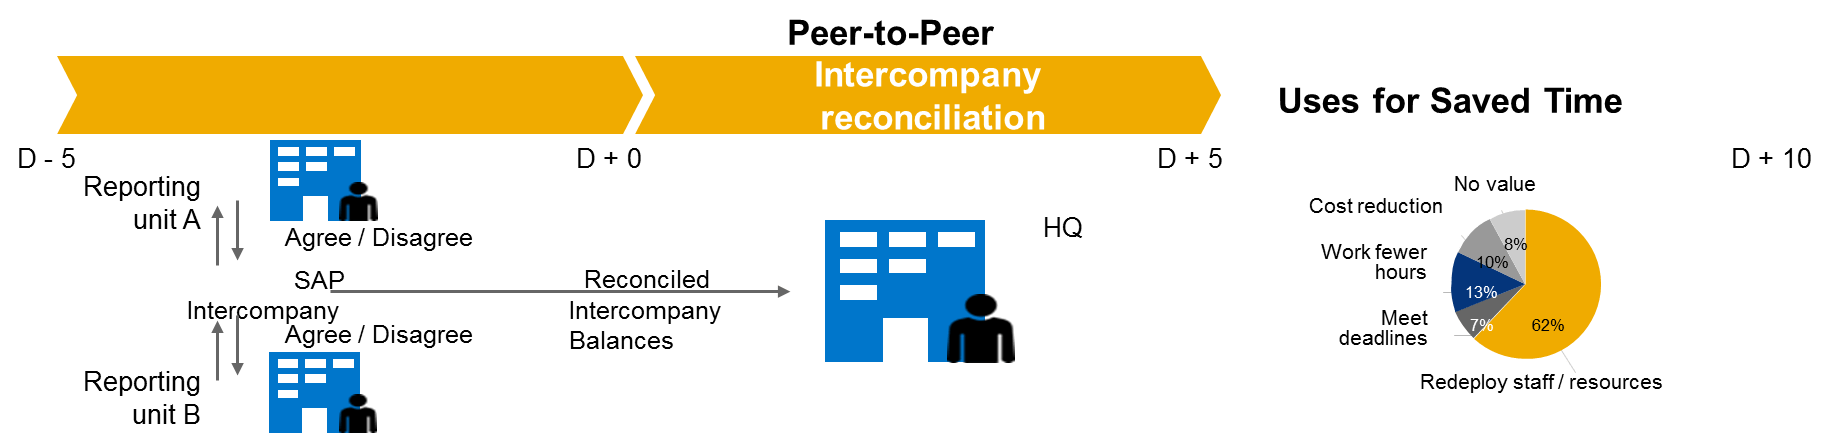 Improve Intercompany Reconciliation With People Process